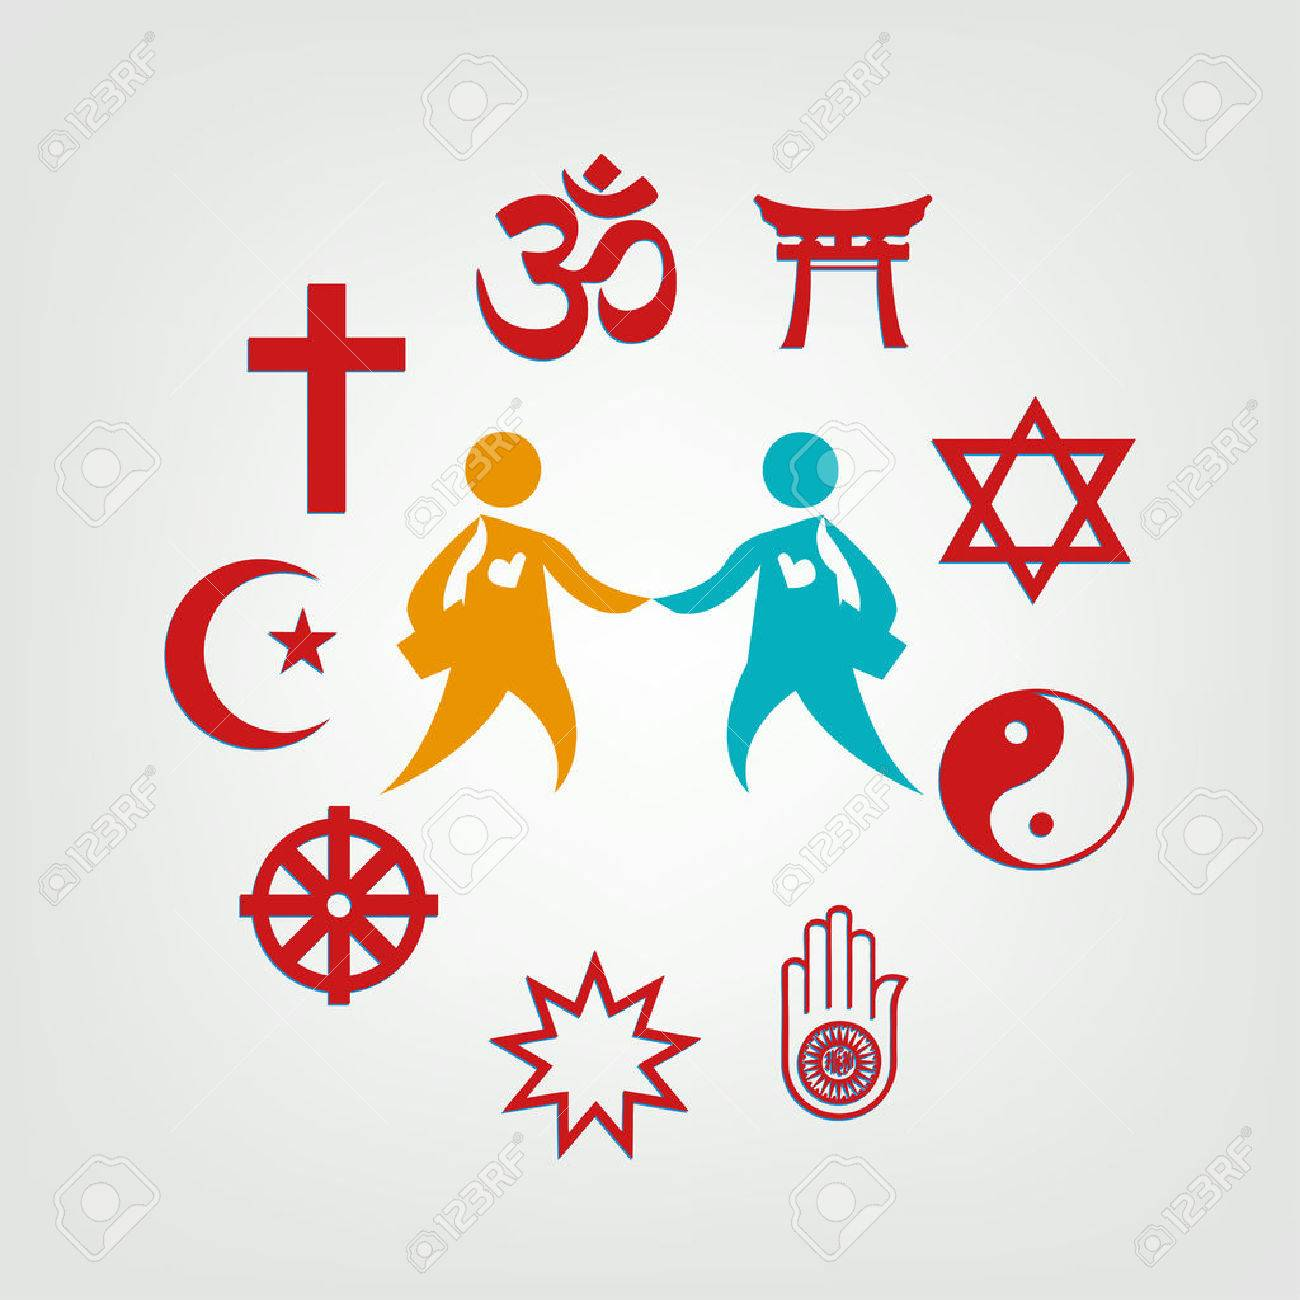 Interfaith Dialogue illustration. Editable Clip Art. Religious symbols  surrounding two persons. Stock Vector